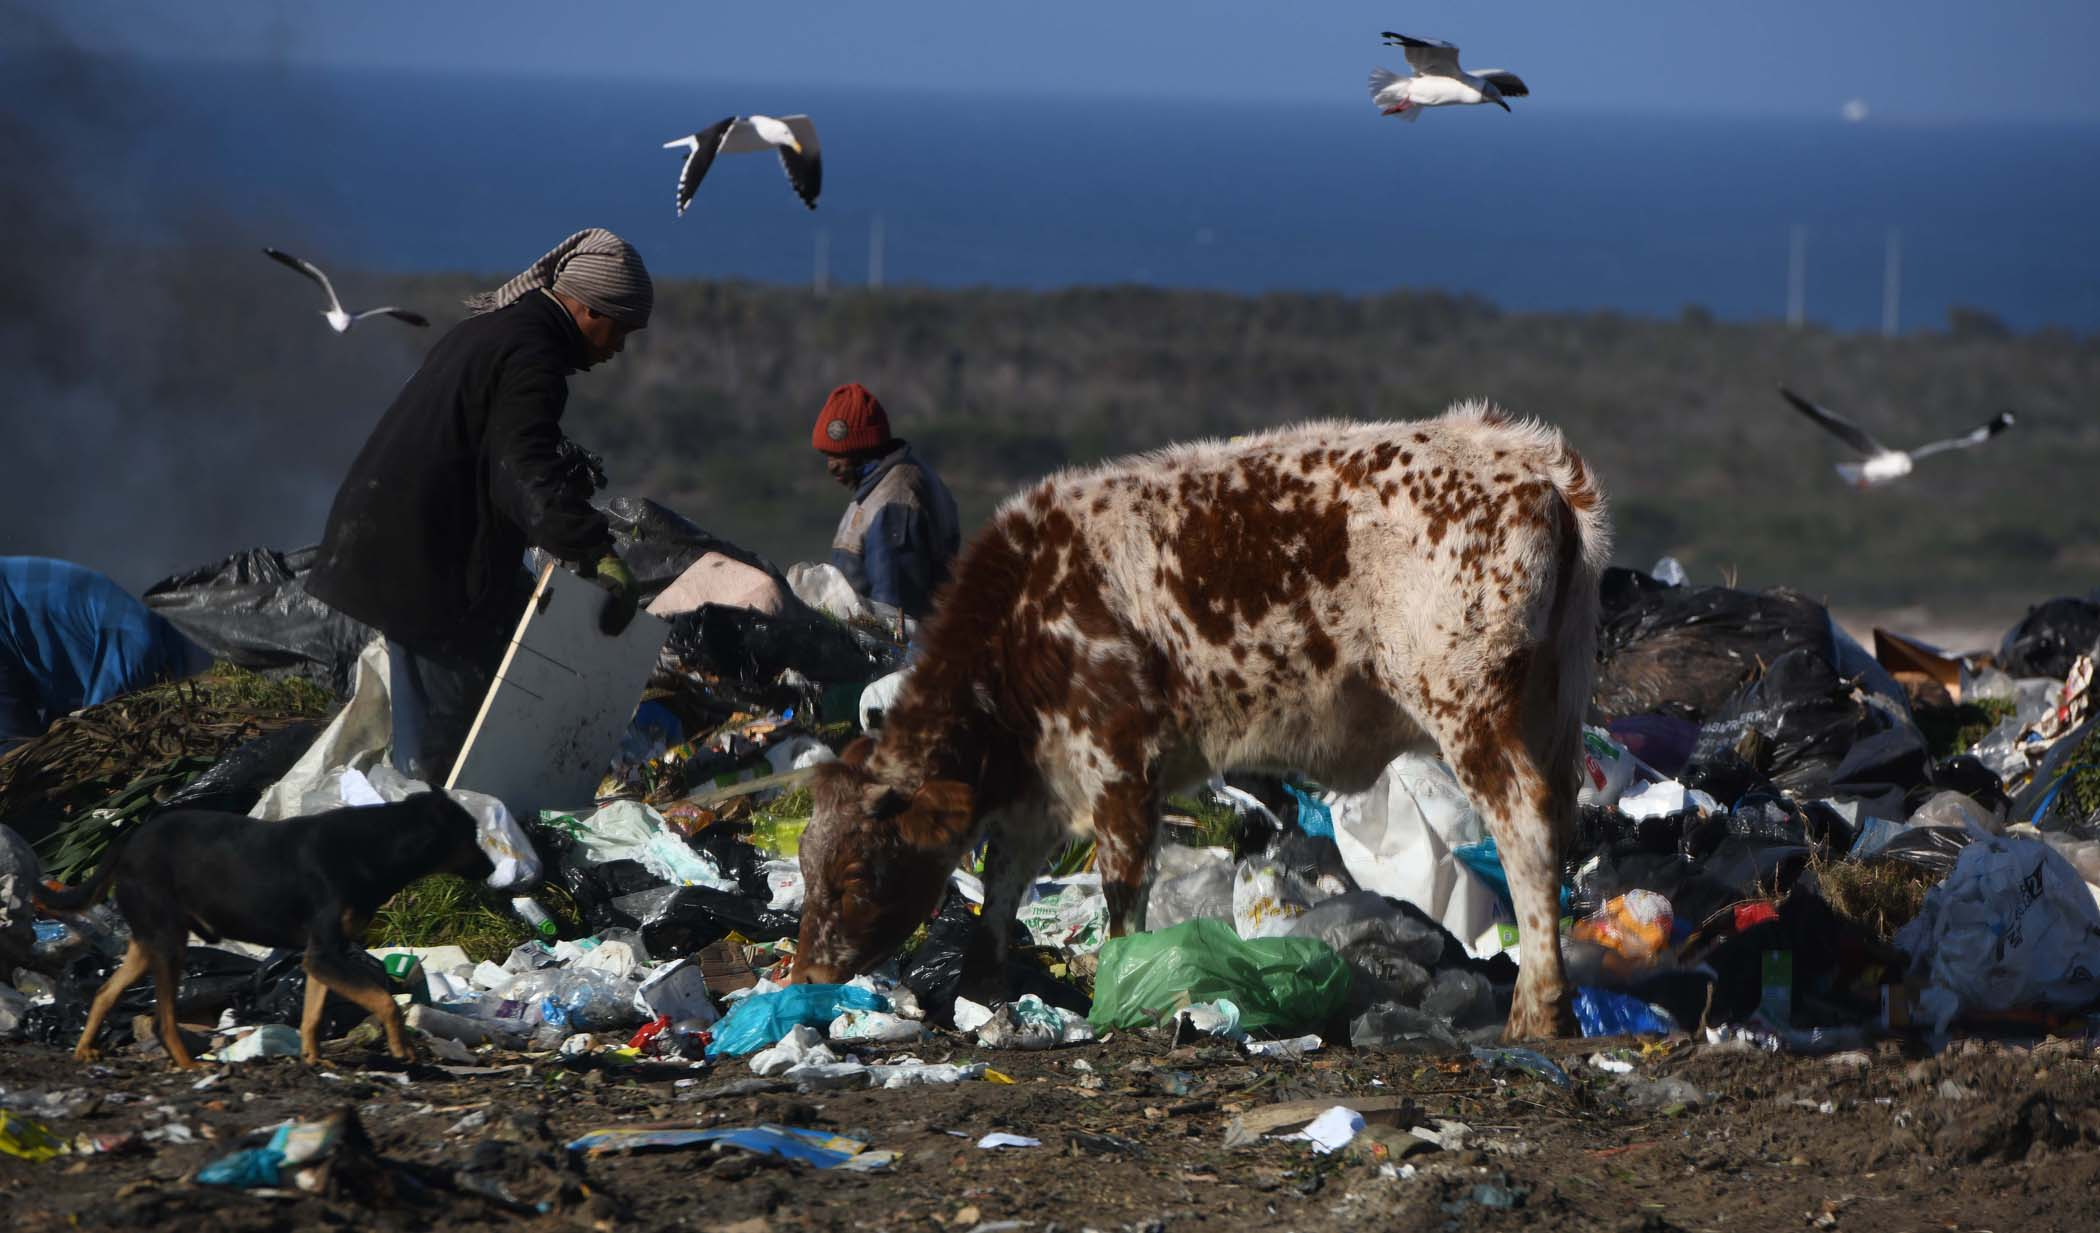 Hundreds of waste pickers spend their days at landfill sites in Nelson Mandela Bay rummaging through mountains of garbage often with bare hands. PHOTO: Black Star/Spotlight